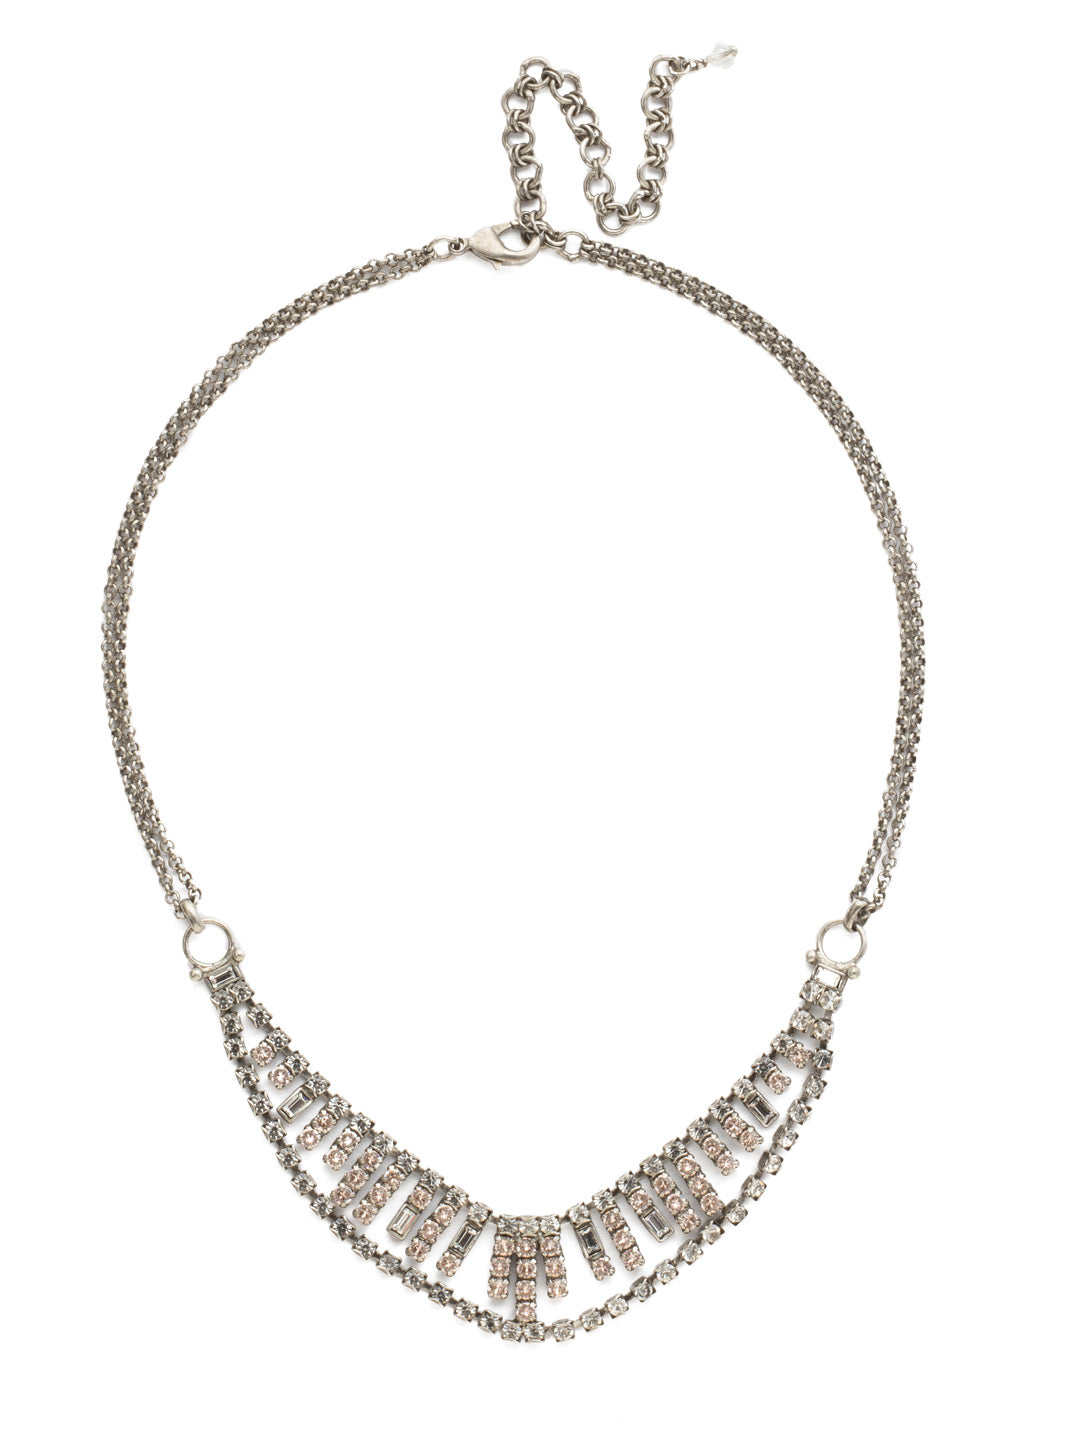 Sparkling Crystal Statement Necklace - NCF4ASSNB